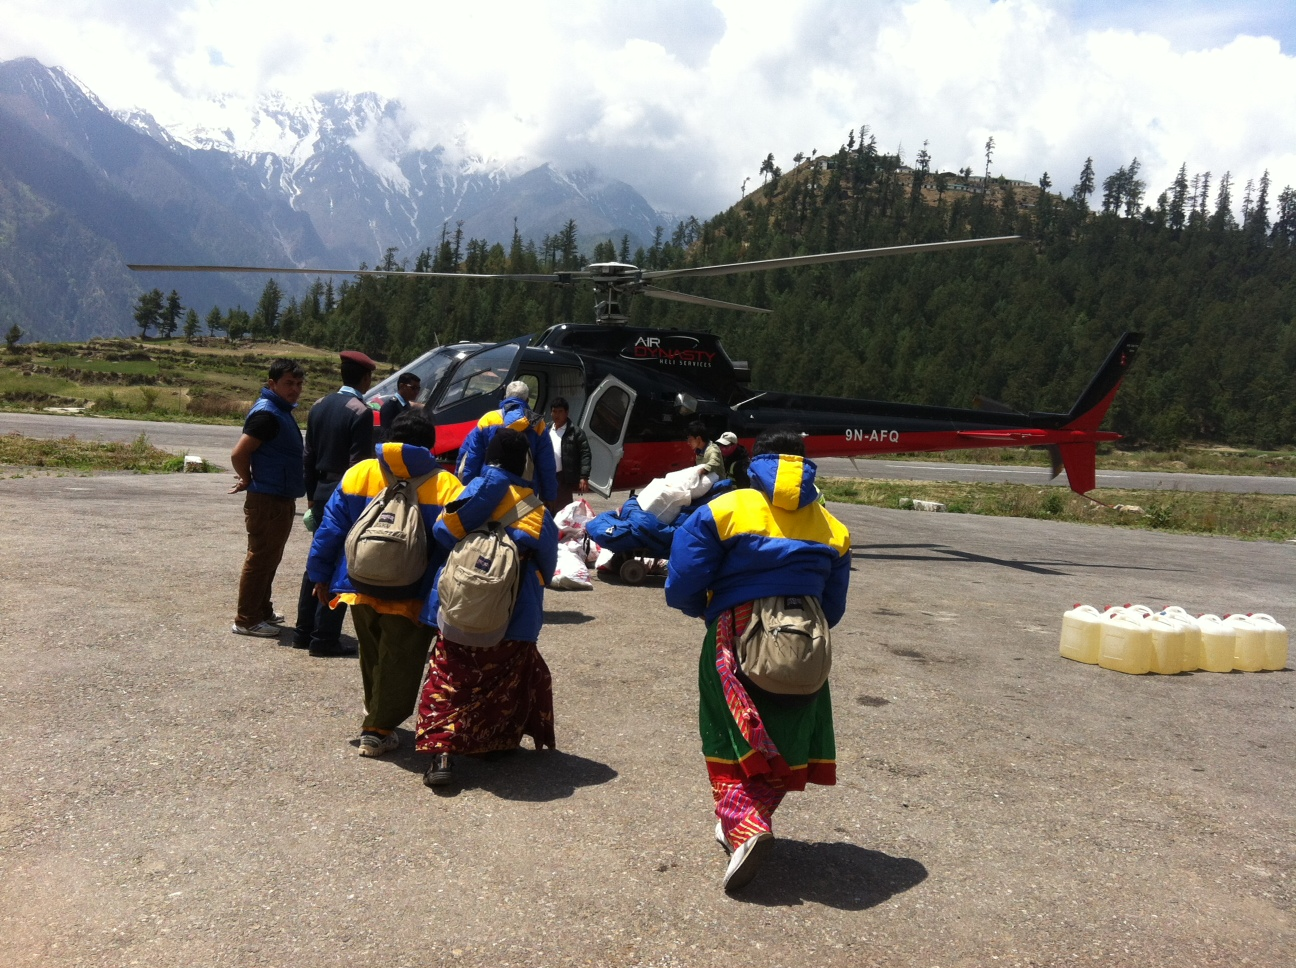 Kailash Mansarovar Yatra From Ex-Lucknow By Helicopter 2020